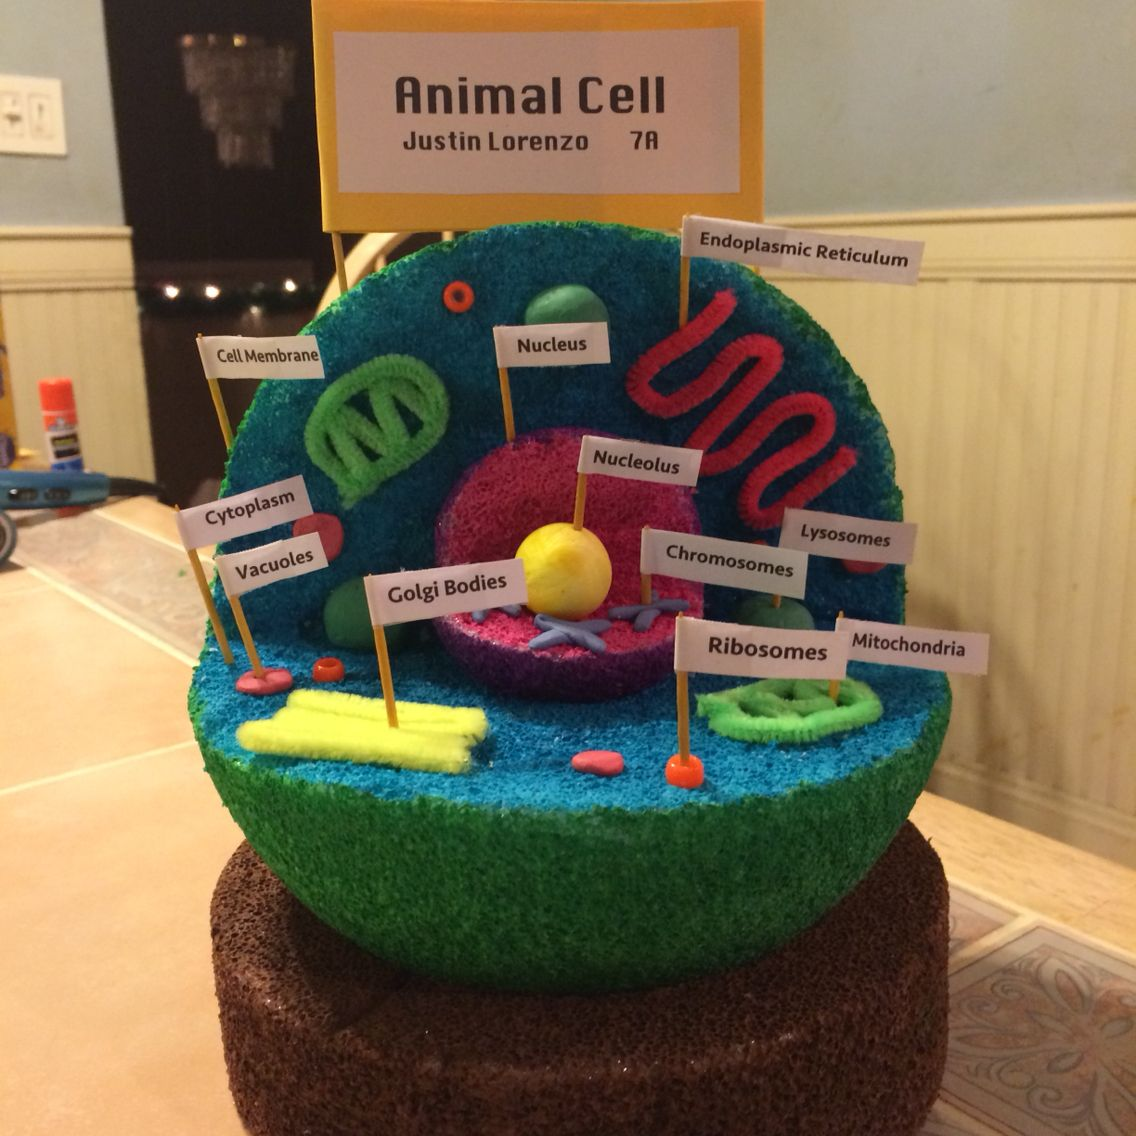 3d animal cell model project Discover ideas about 3d animal cell project animal cell model for luke 3d  animal cell projectplant cell project modelscell model projectcell project ideas 3d.